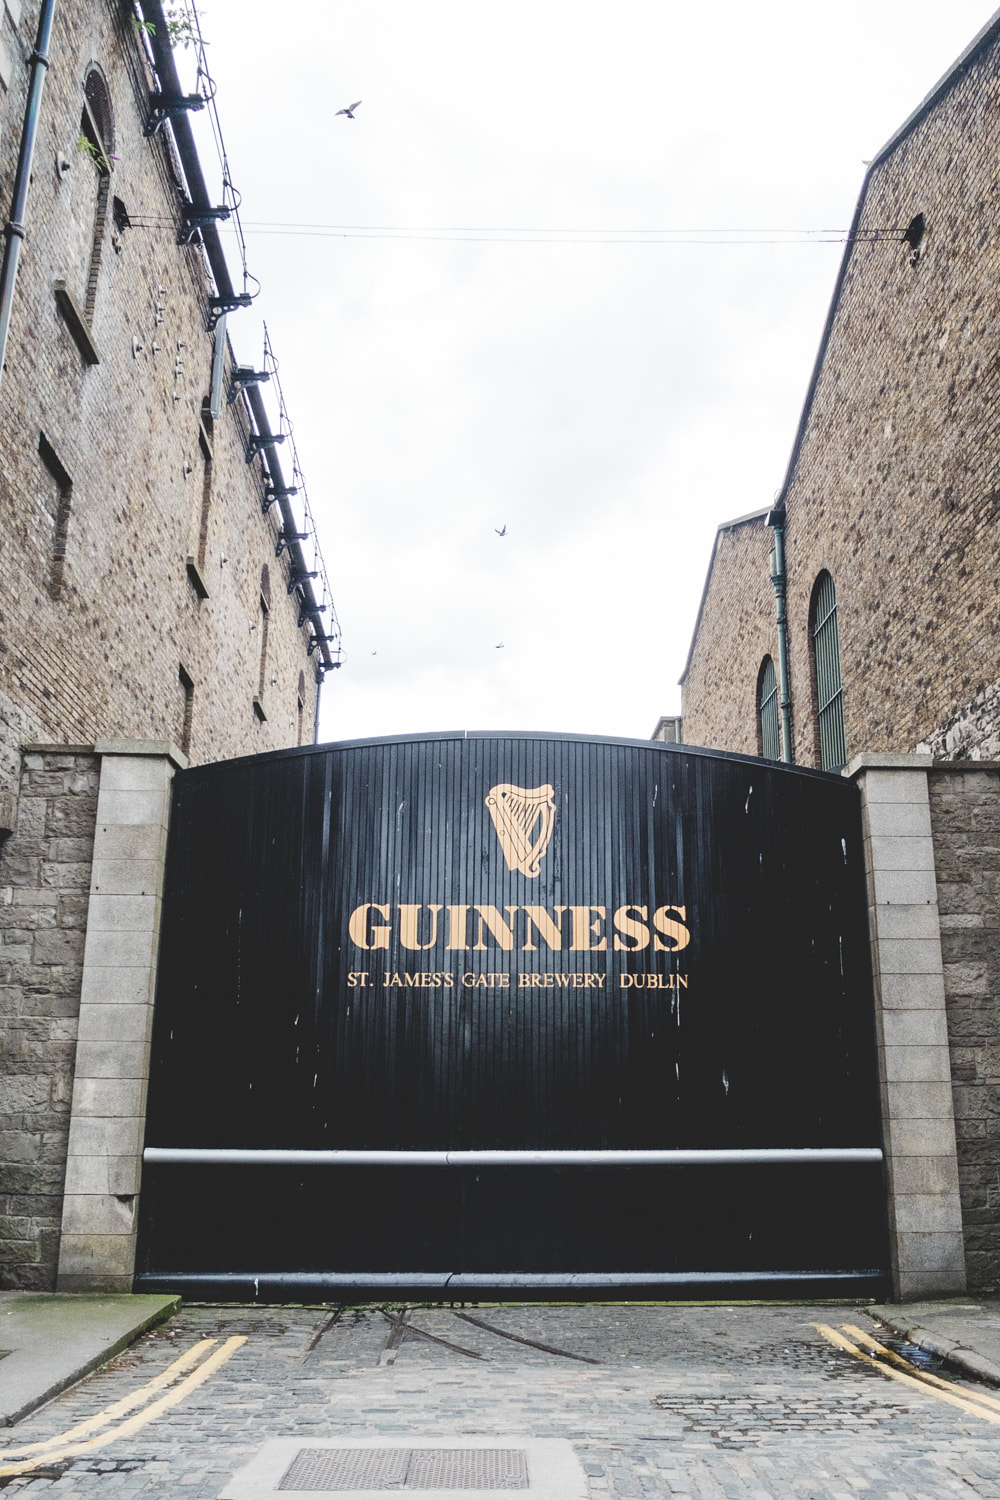 Guinness Storehouse in Dublin, Ireland.